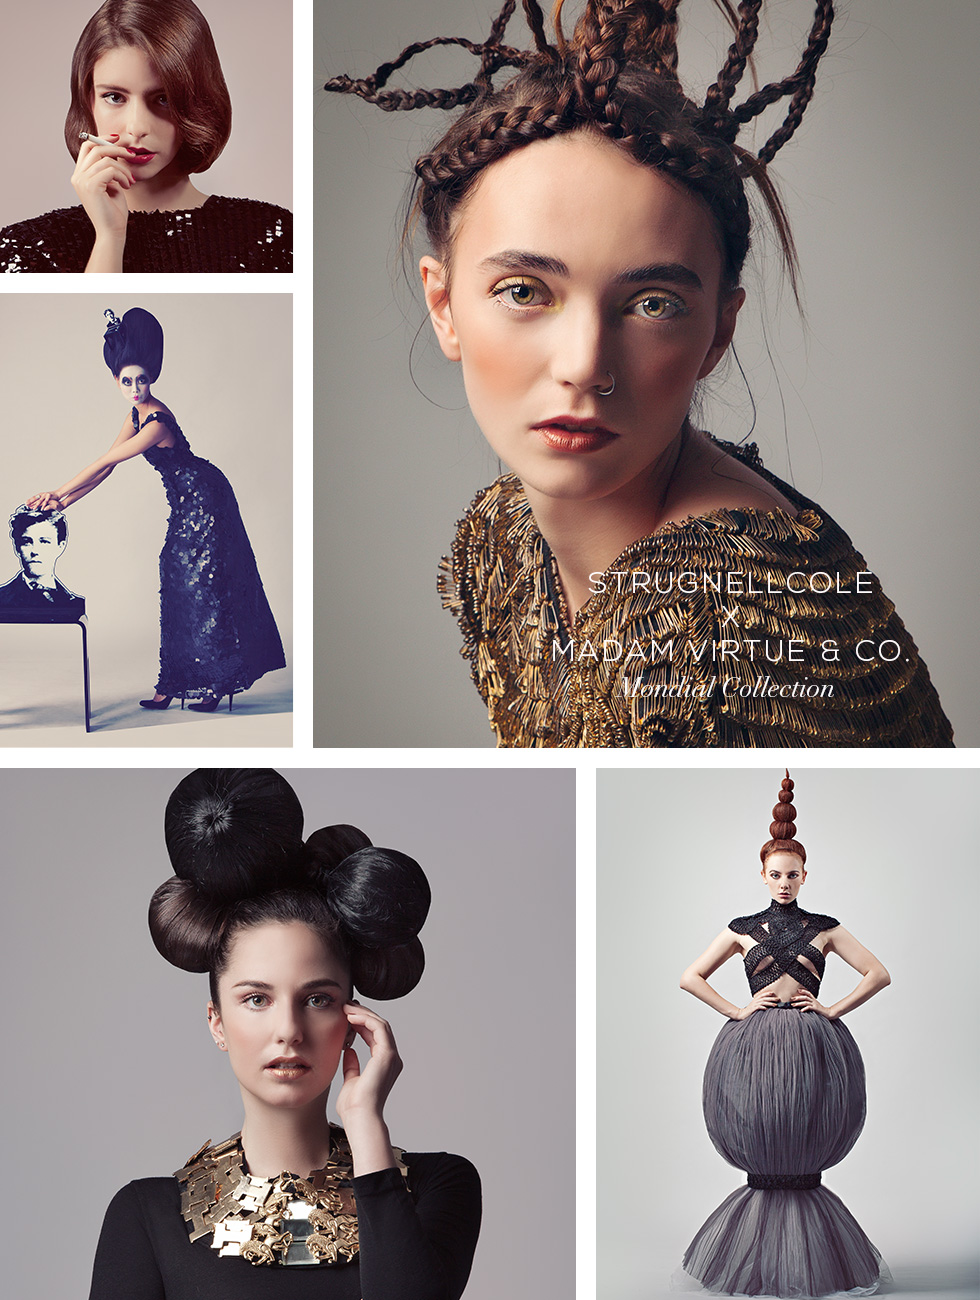 strugnellcole hairdressing, hair styling, madam virtue & co